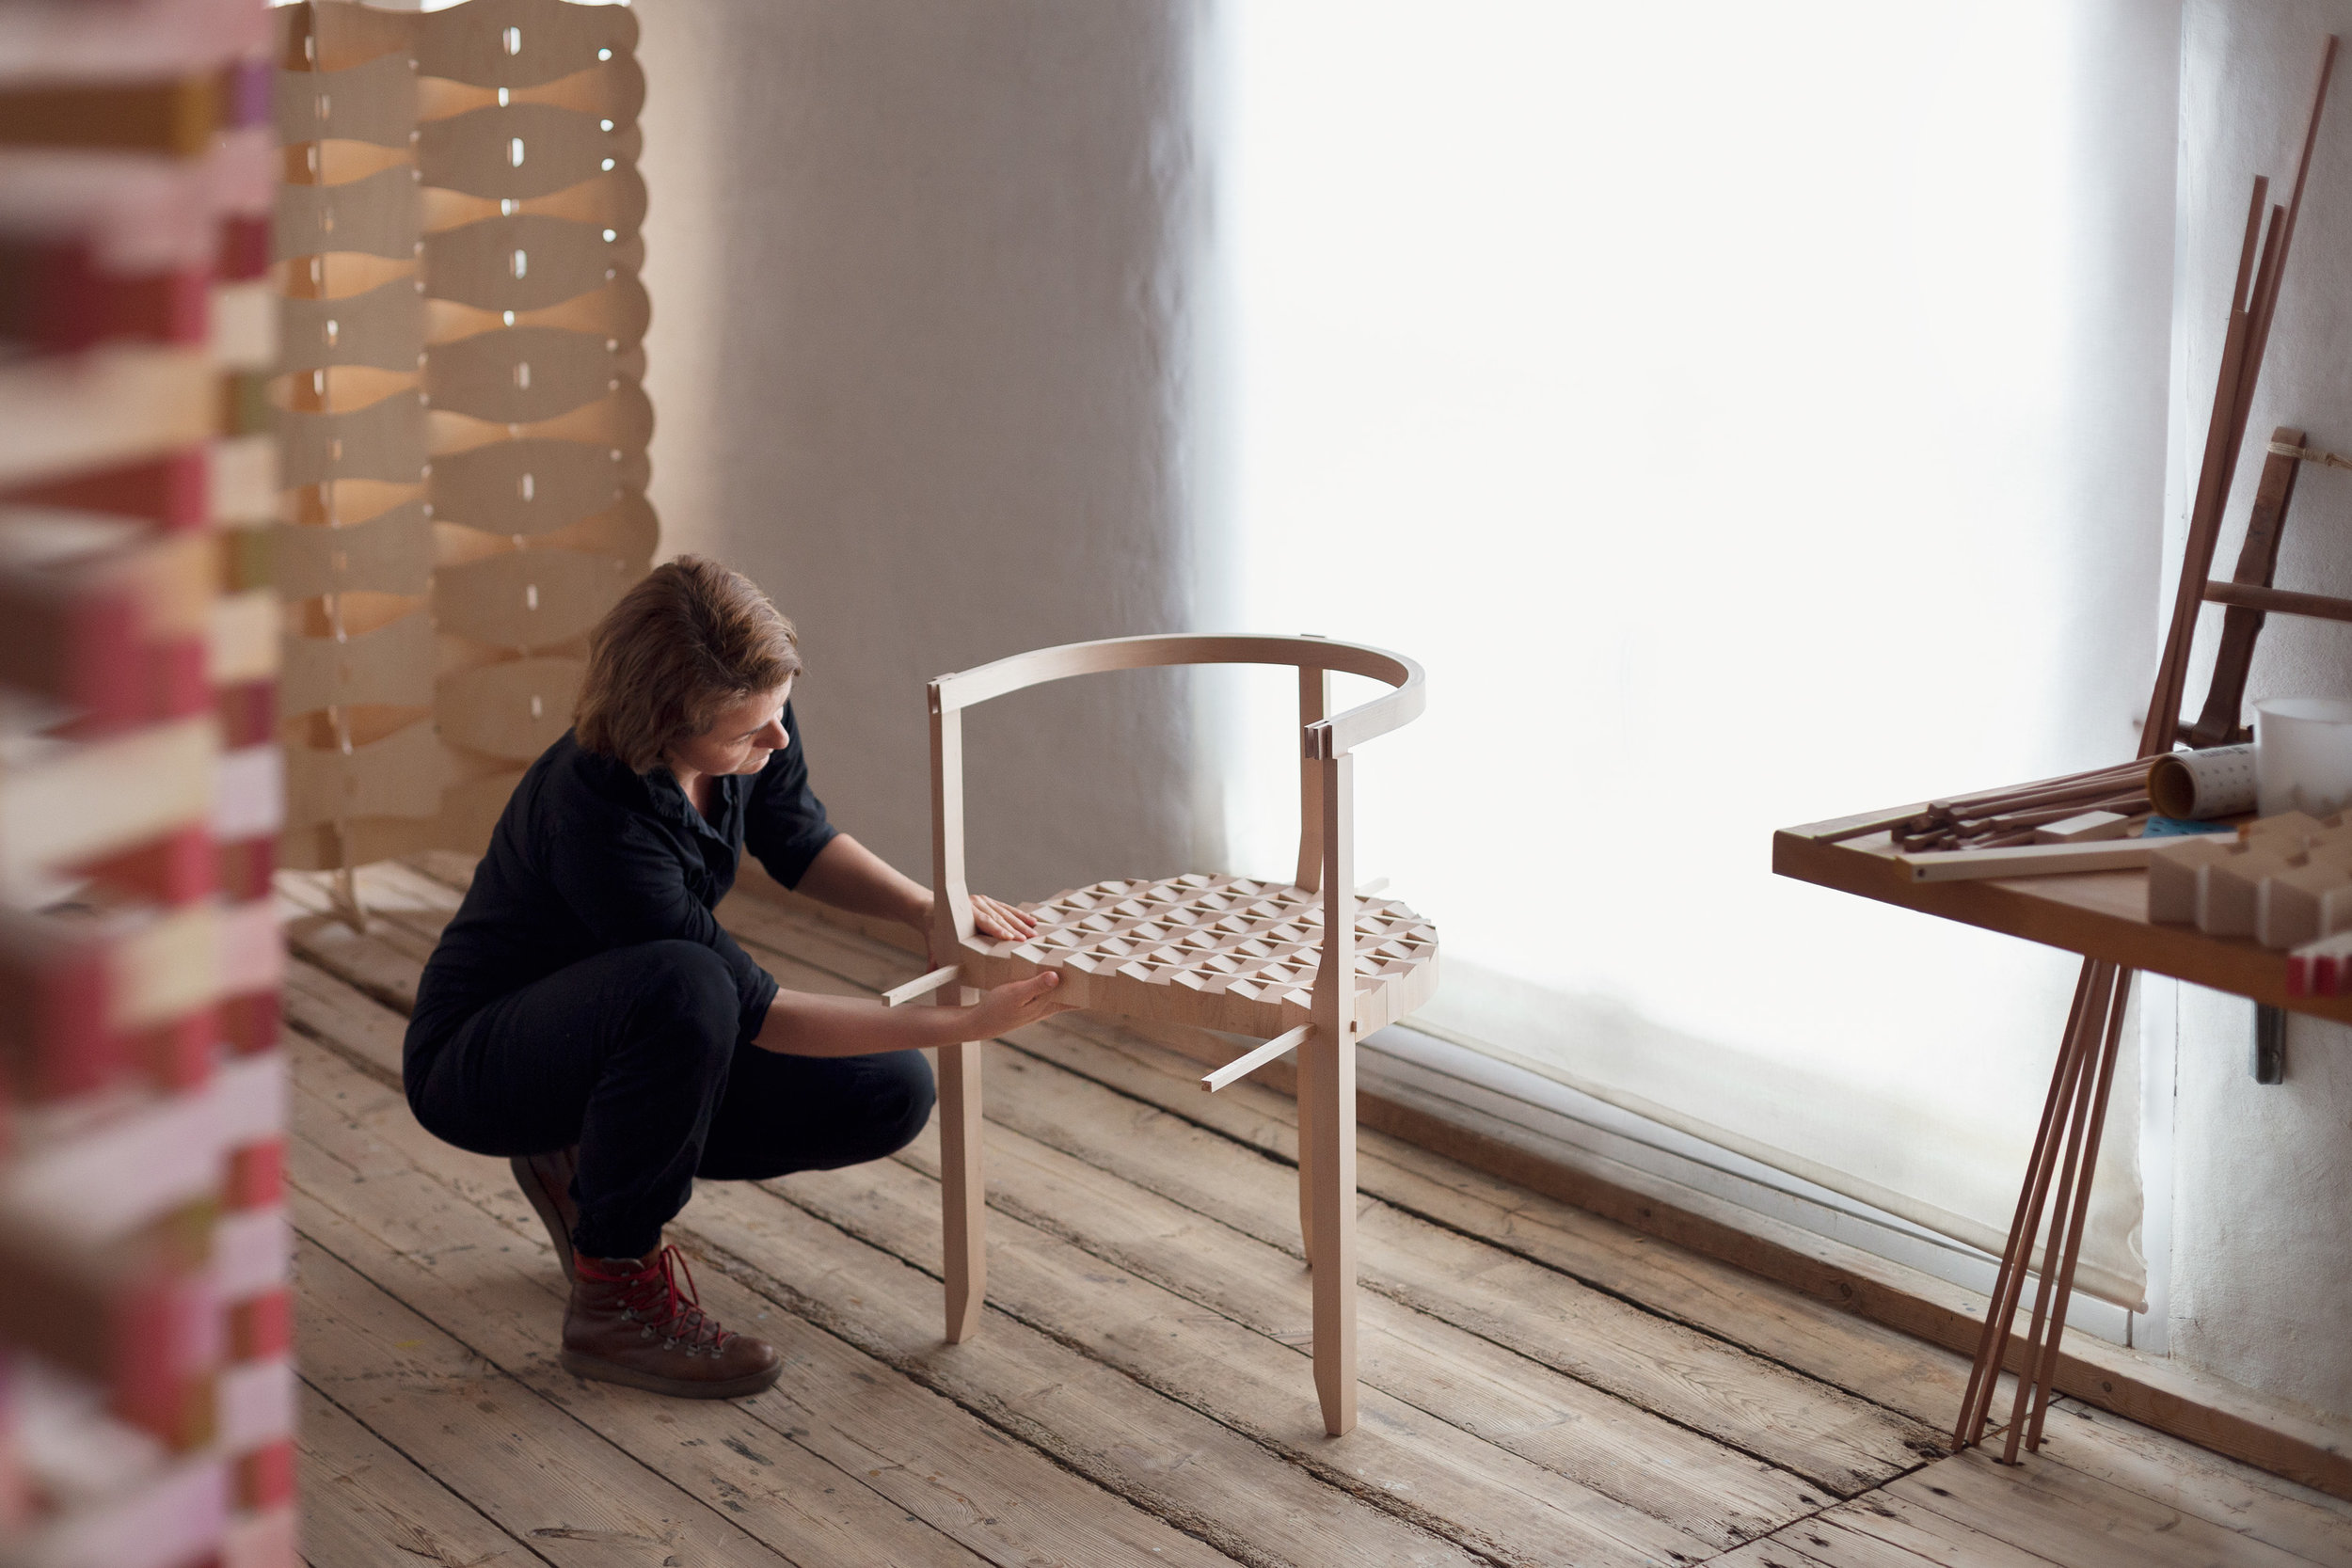 Architect Else-Rikke Bruun at The Danish Art Workshops